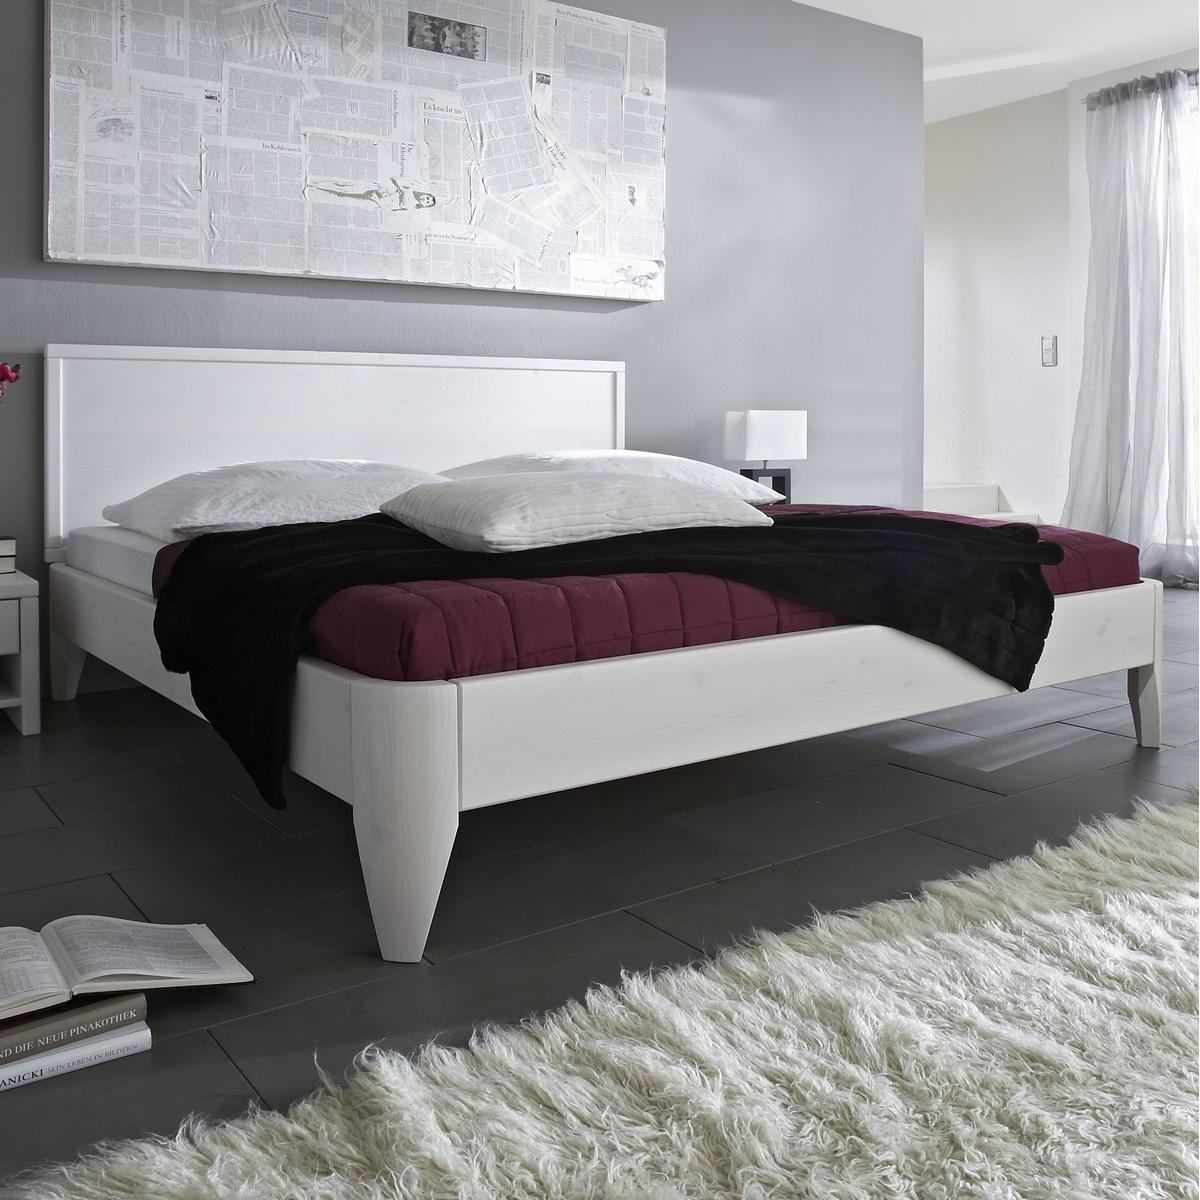 massivholz bett 200x200 easy sleep kiefer massiv wei lackiert 9320 72 0. Black Bedroom Furniture Sets. Home Design Ideas